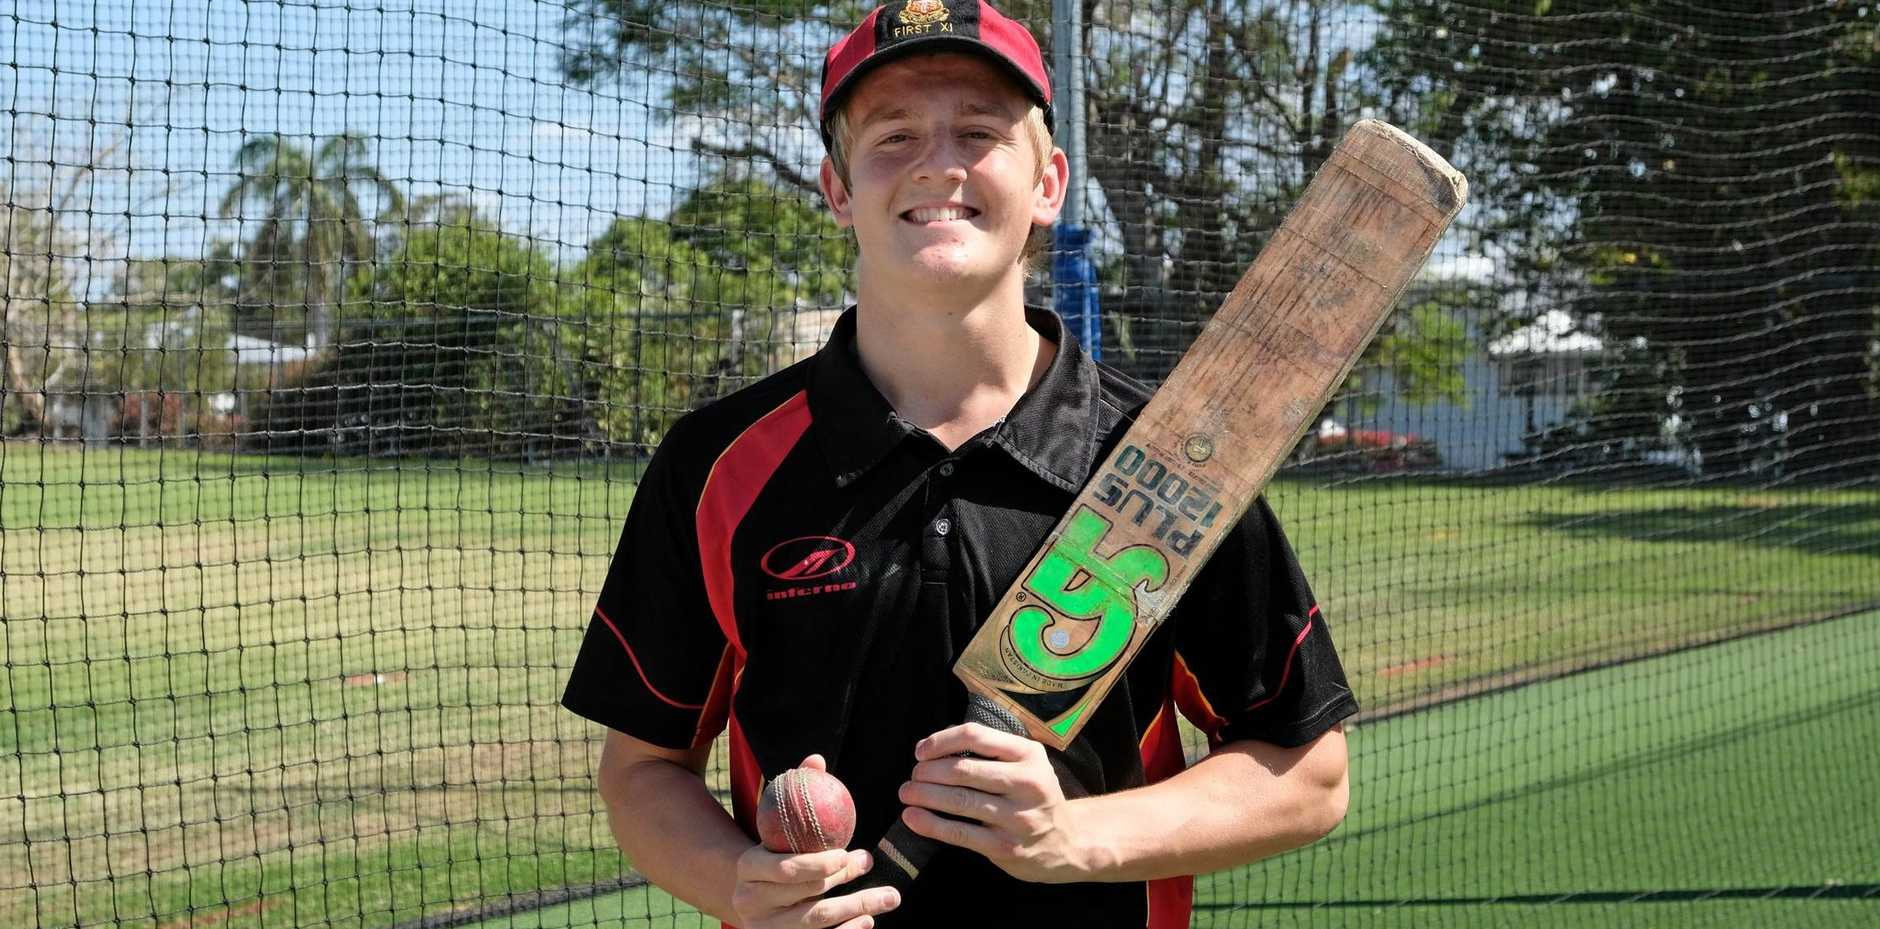 CRICKET STAR: Rockhampton all-rounder Leighton Milburn will make his Queensland debut at this week's national open schoolboys championships in Sydney.